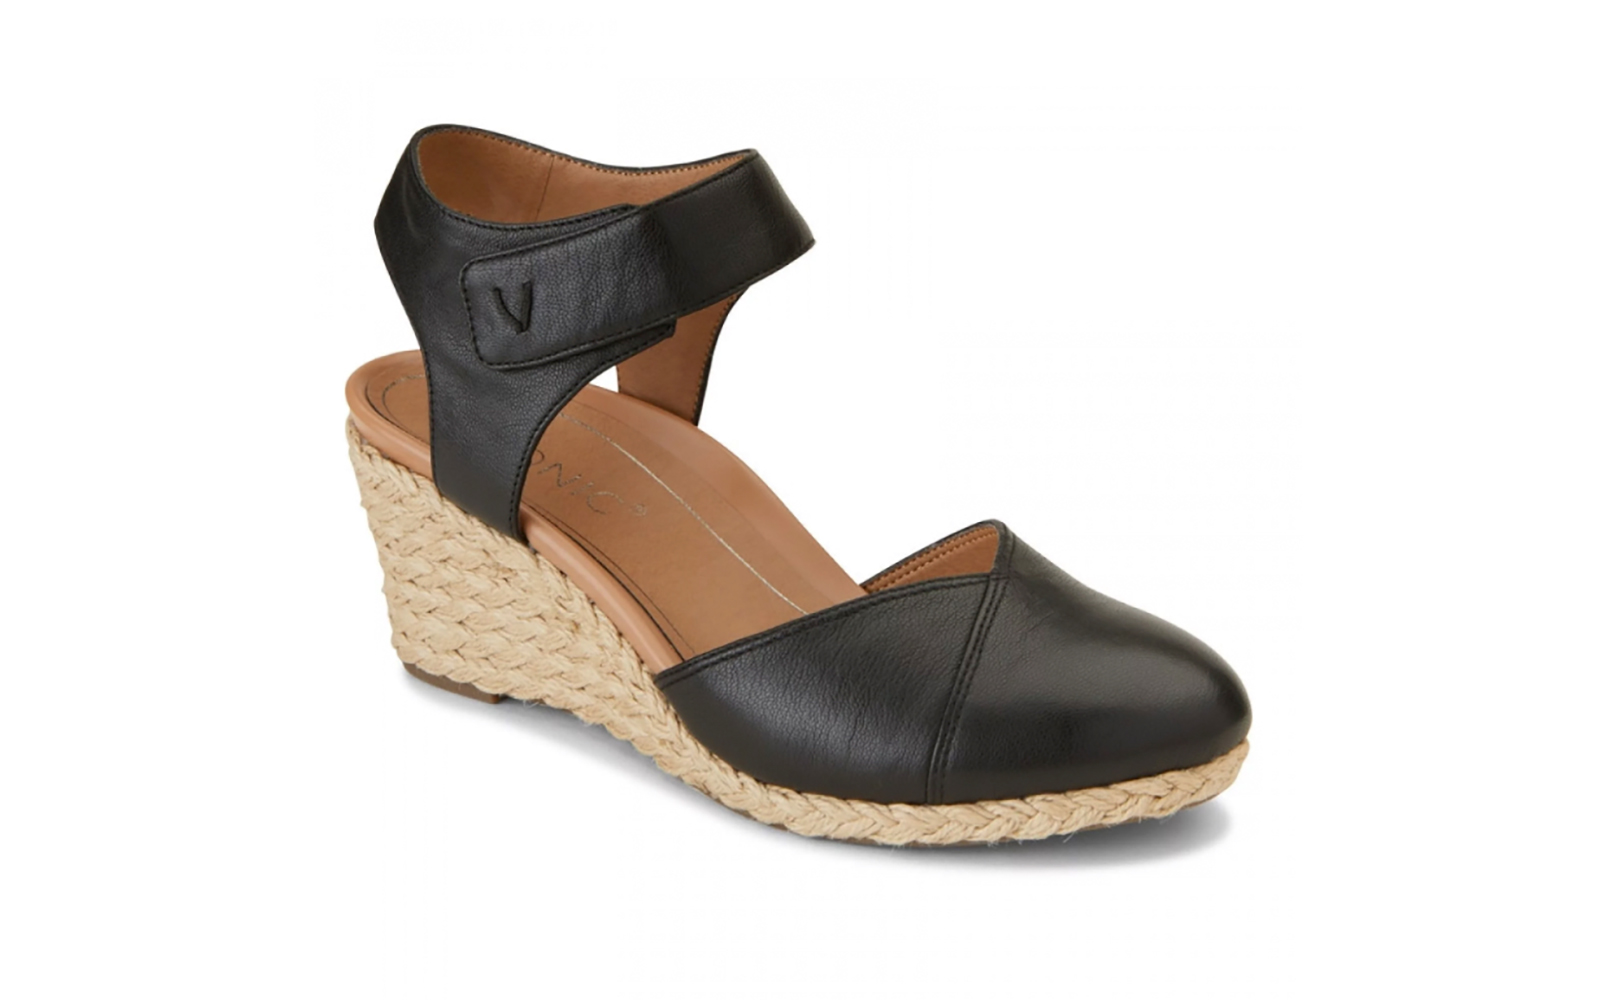 Loika Wedge Espadrille Shoe